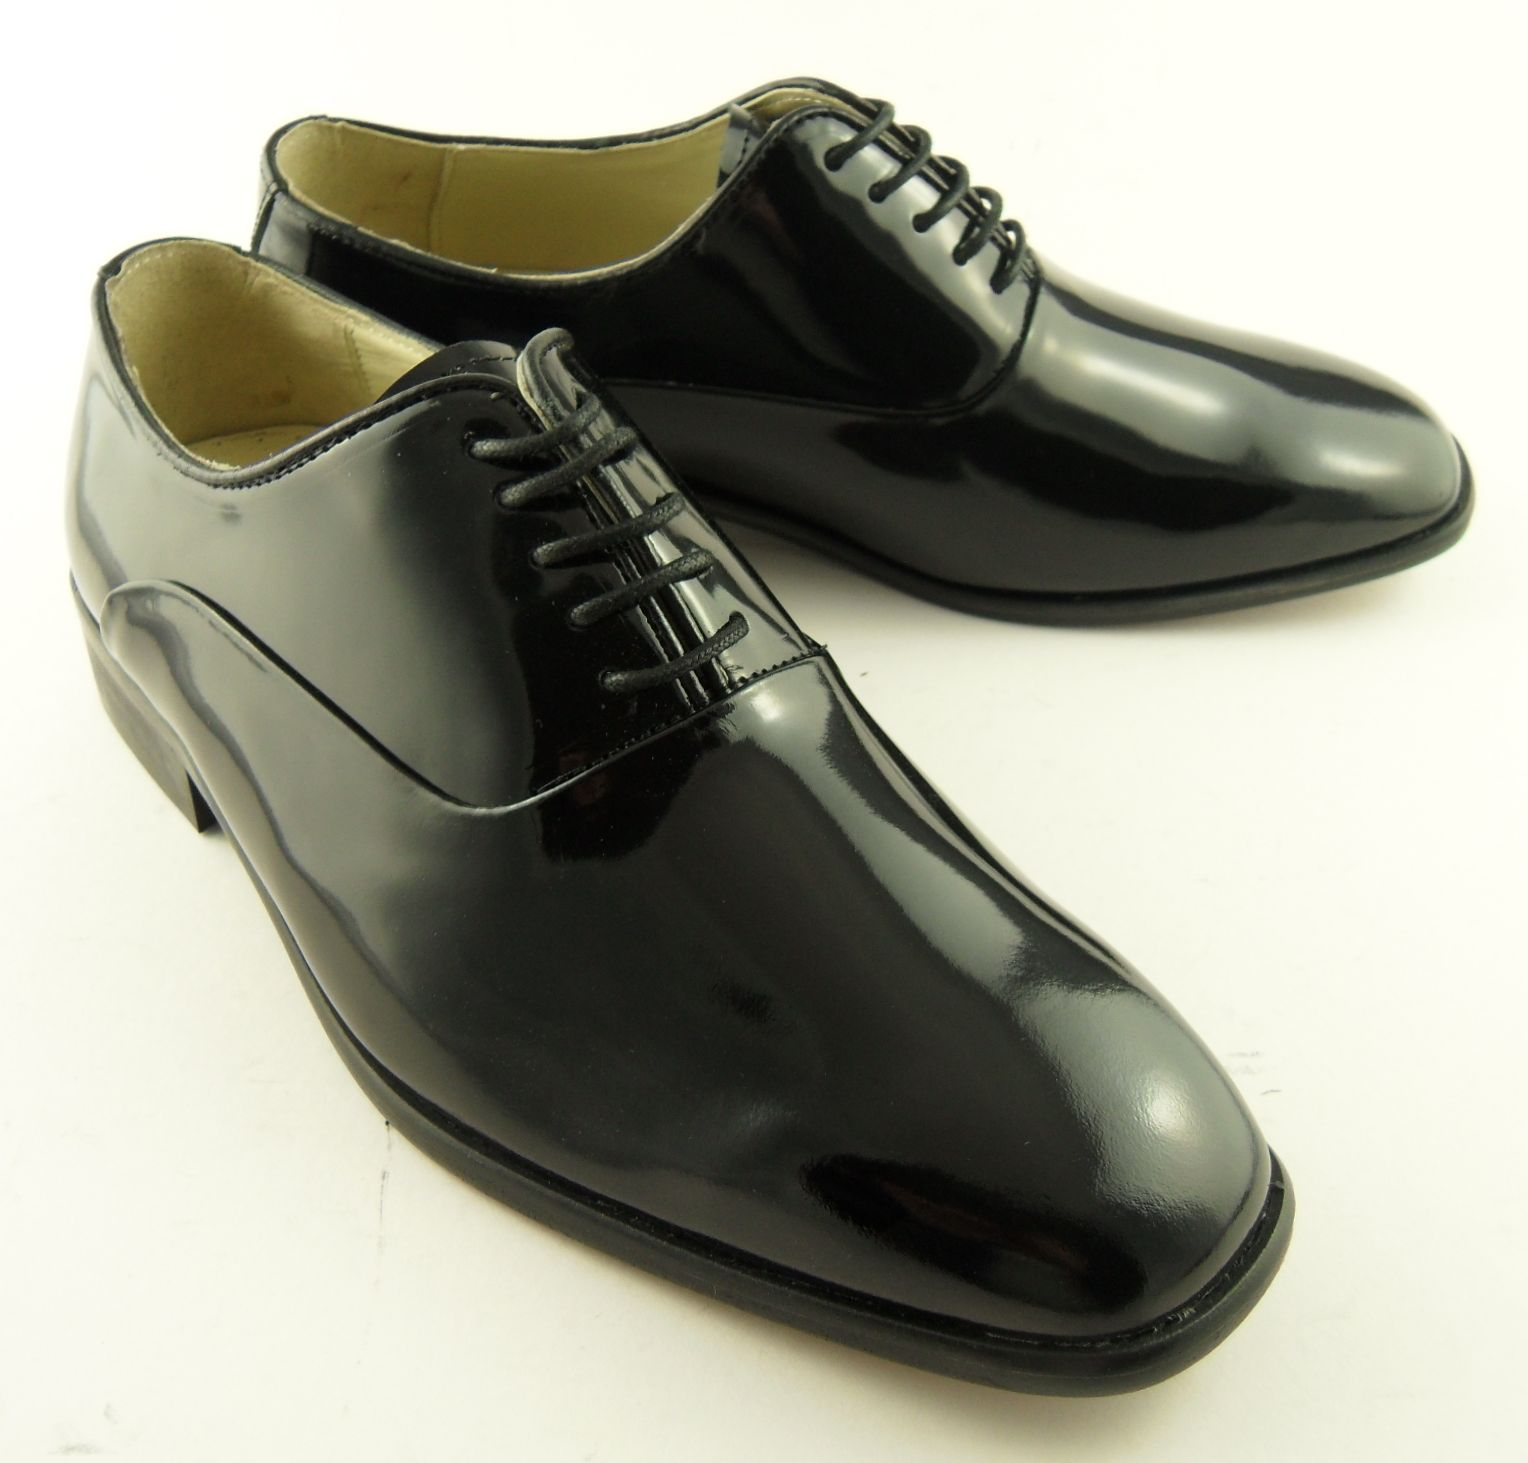 mens montecatini patent leather dress shiny shoes 7 12 ebay